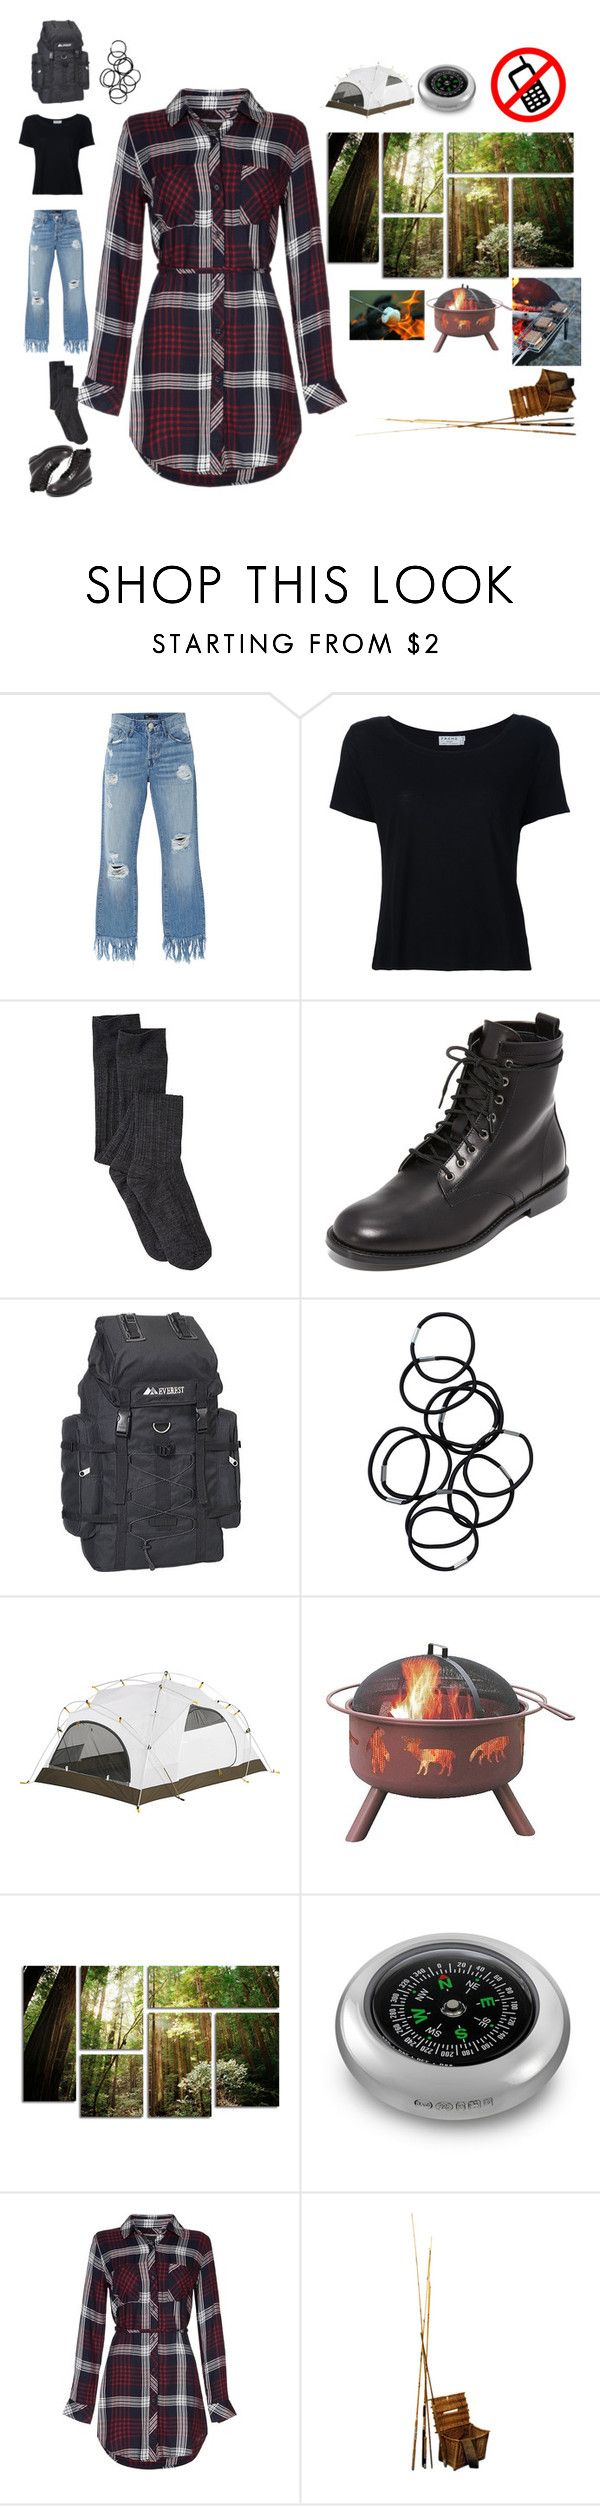 """Tartan and camping"" by rylock ❤ liked on Polyvore featuring 3x1, Frame, Jenni Kayne, Everest, Monki, VERONA and Landmann"